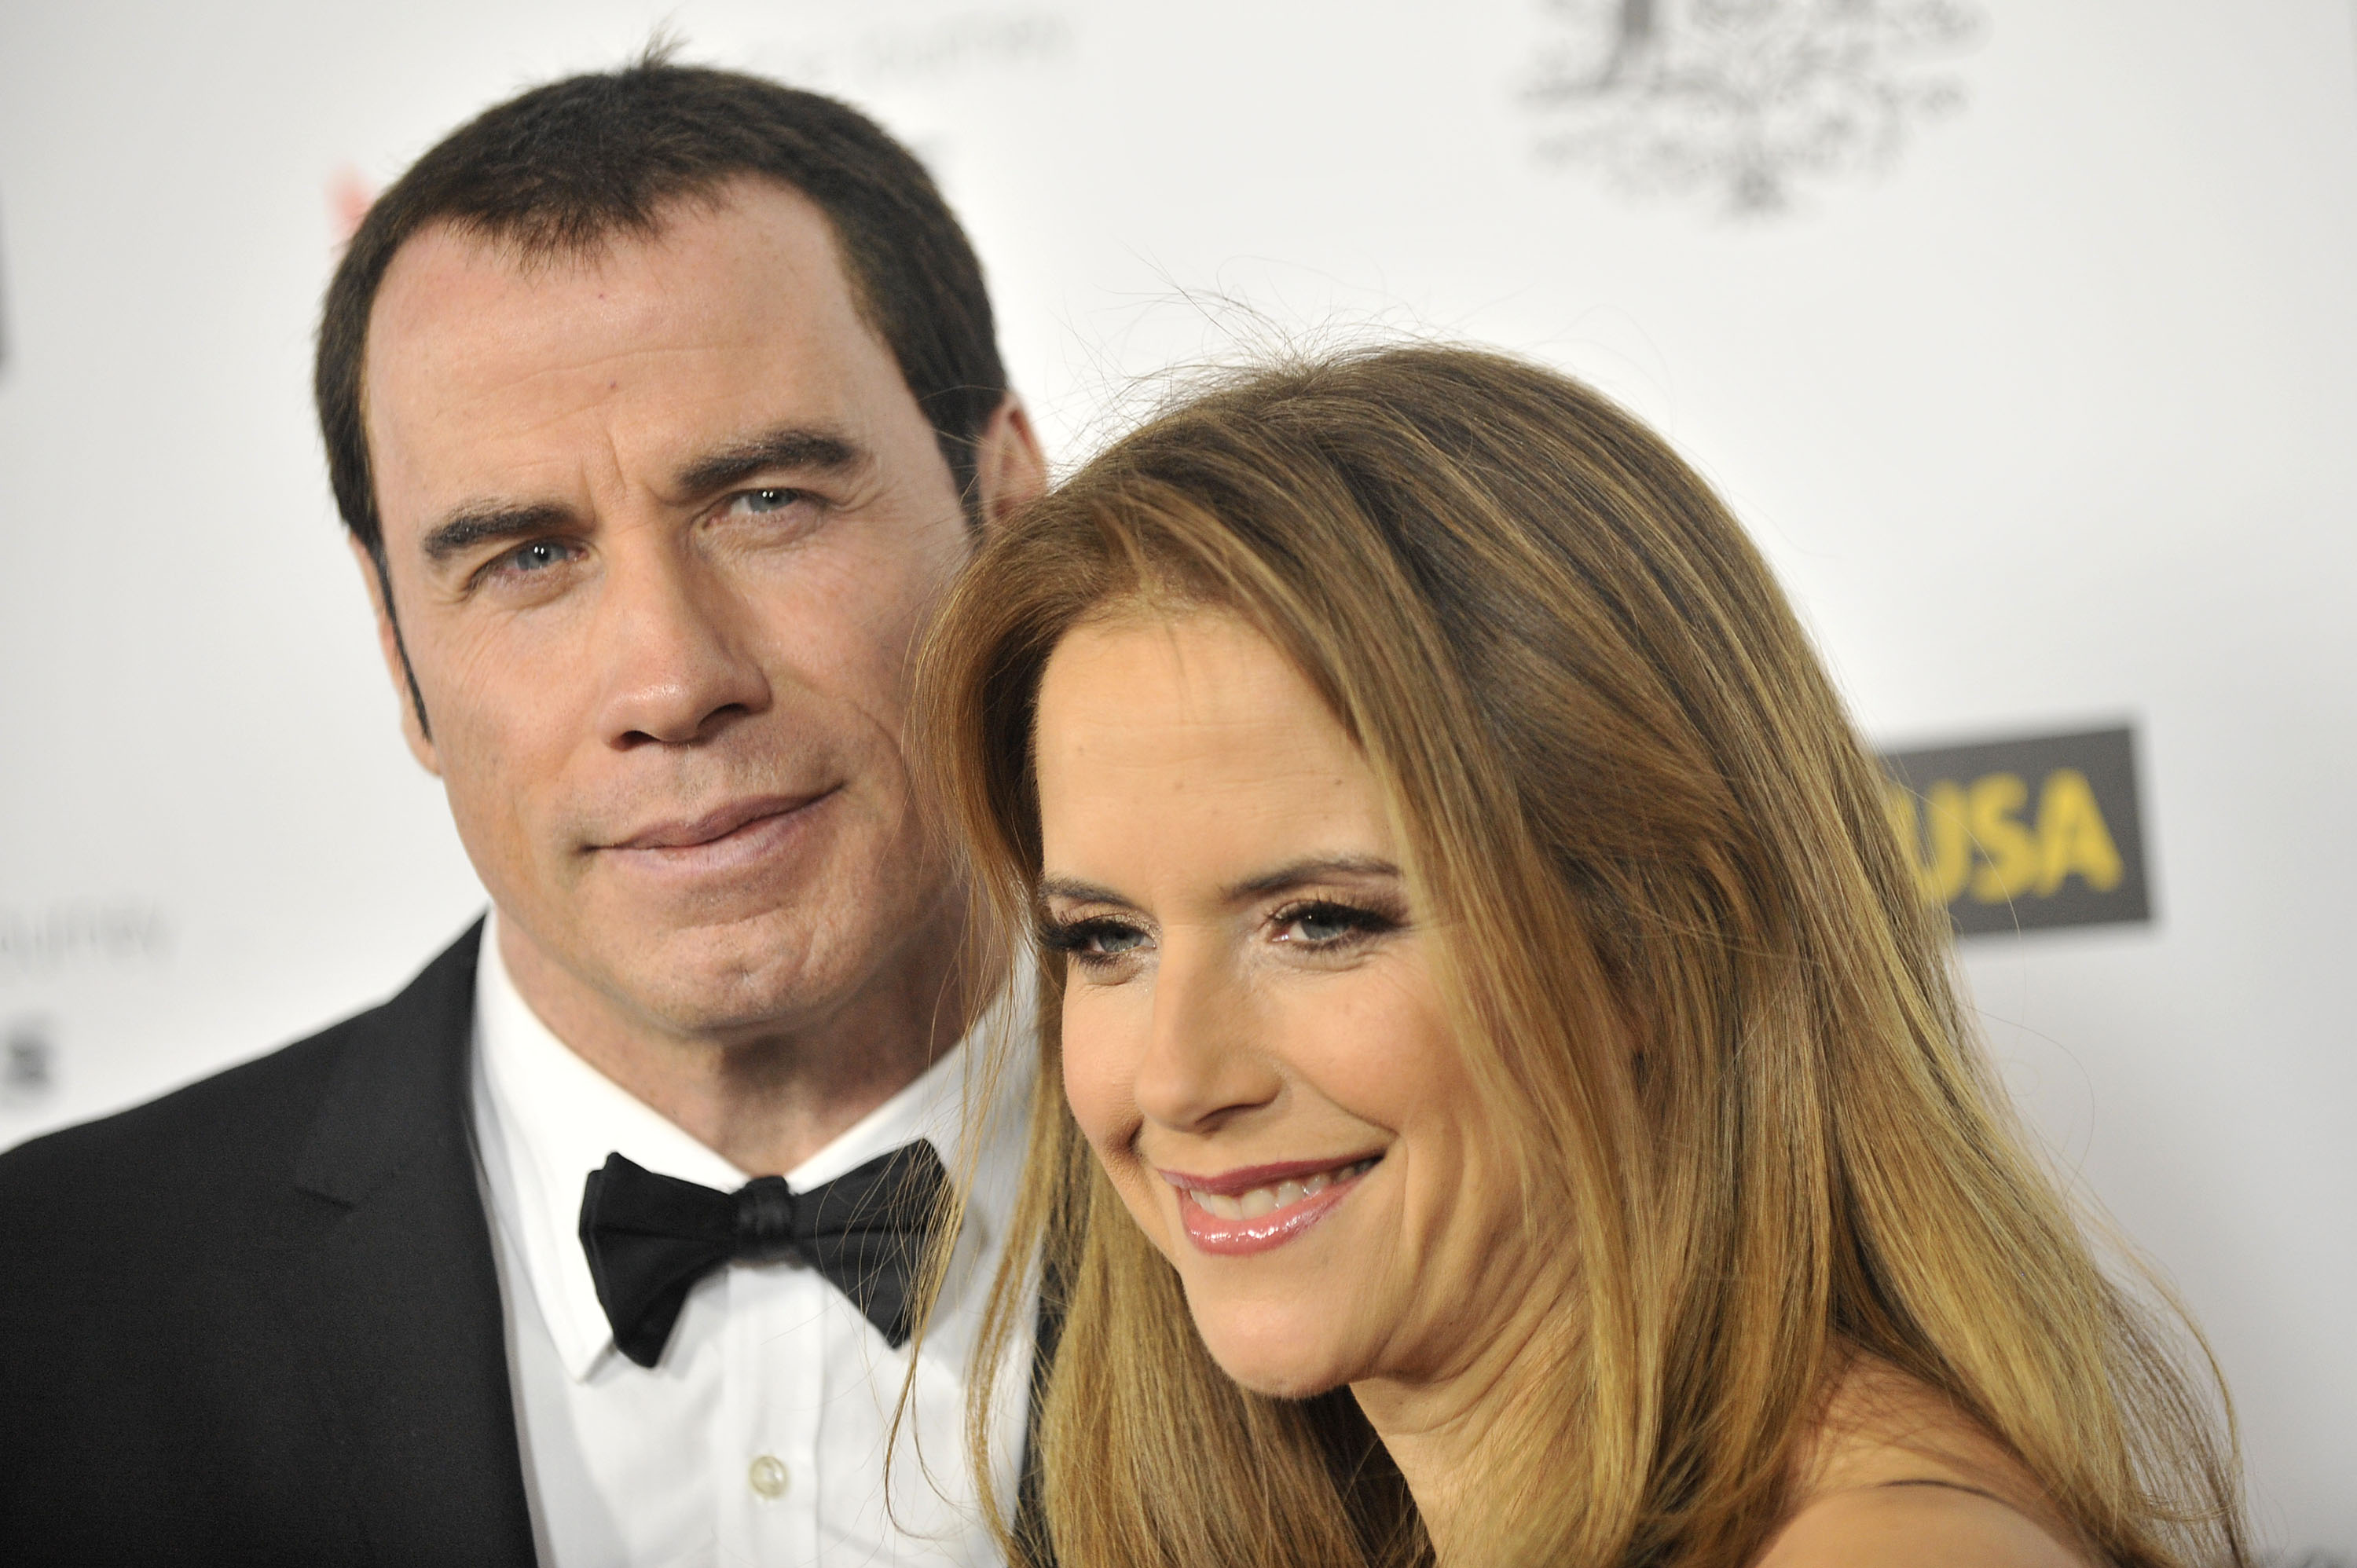 HOLLYWOOD, CA - JANUARY 14: John Travolta and Kelly Preston arrives for the 9th Annual G'Day USA Los Angeles Black Tie Gala on January 14, 2012 in Hollywood, California. (Photo by Toby Canham/Getty Images)